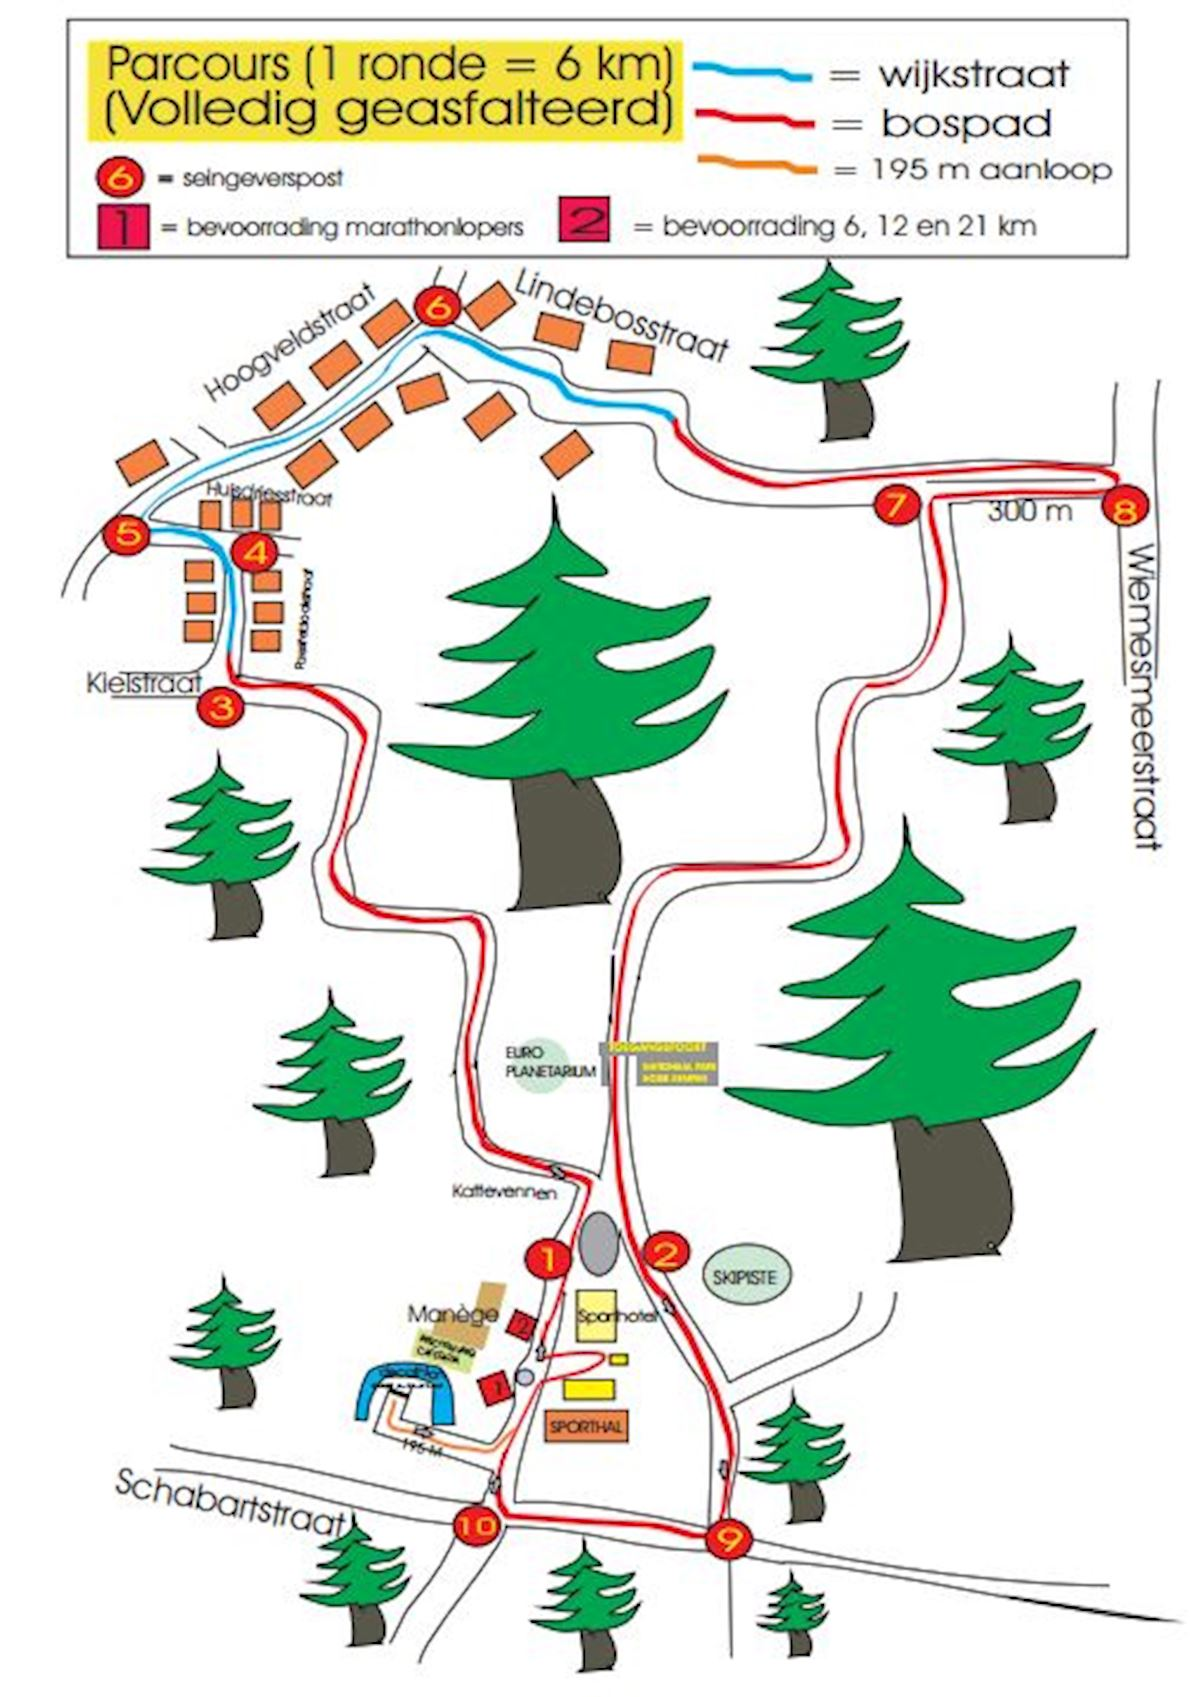 Memorial Louis Persoon Marathon Route Map